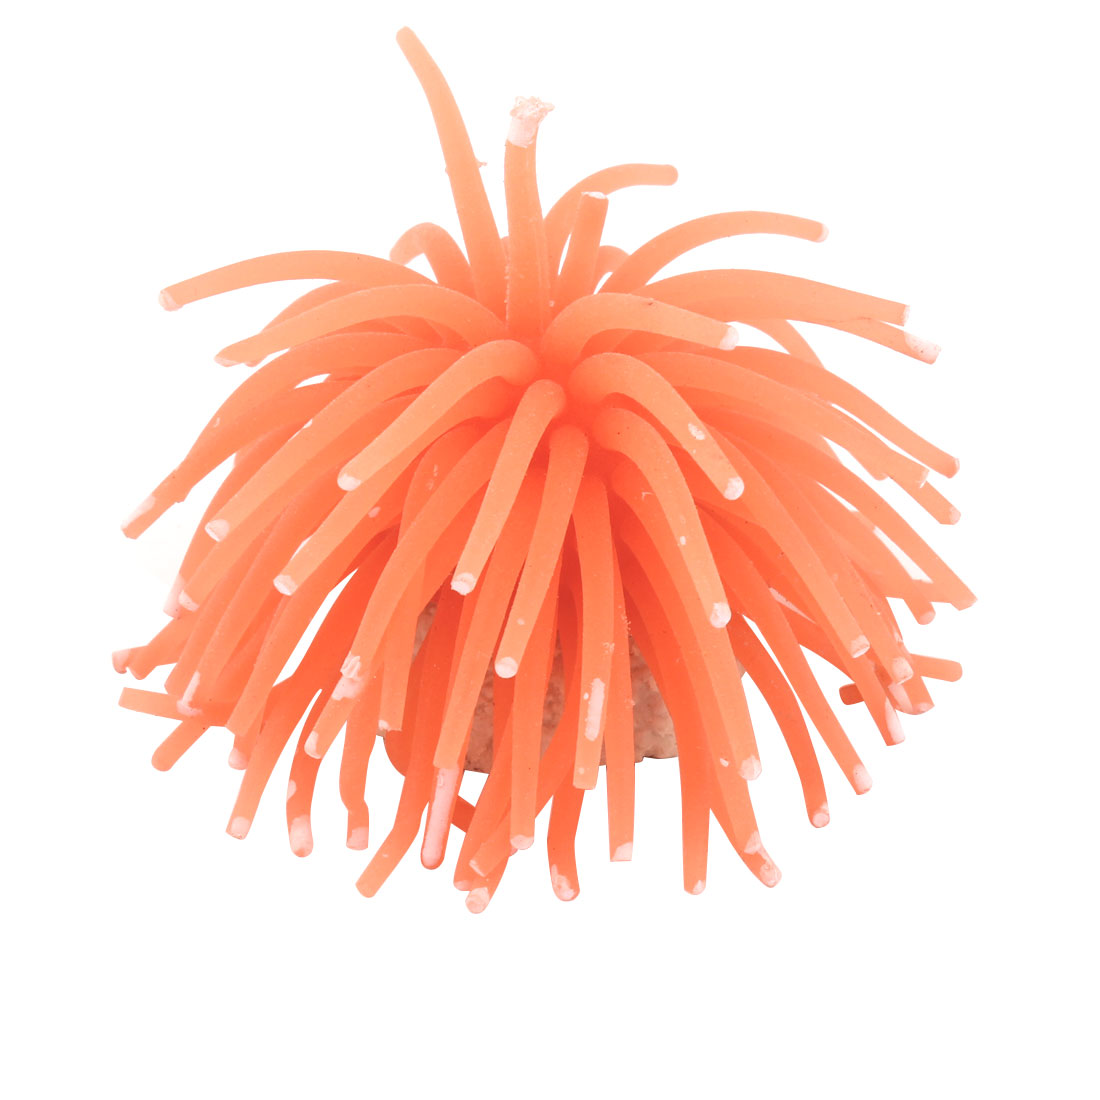 Soft Silicone Coral Shaped Orange White Sea Urchin Decor for Fish Tank